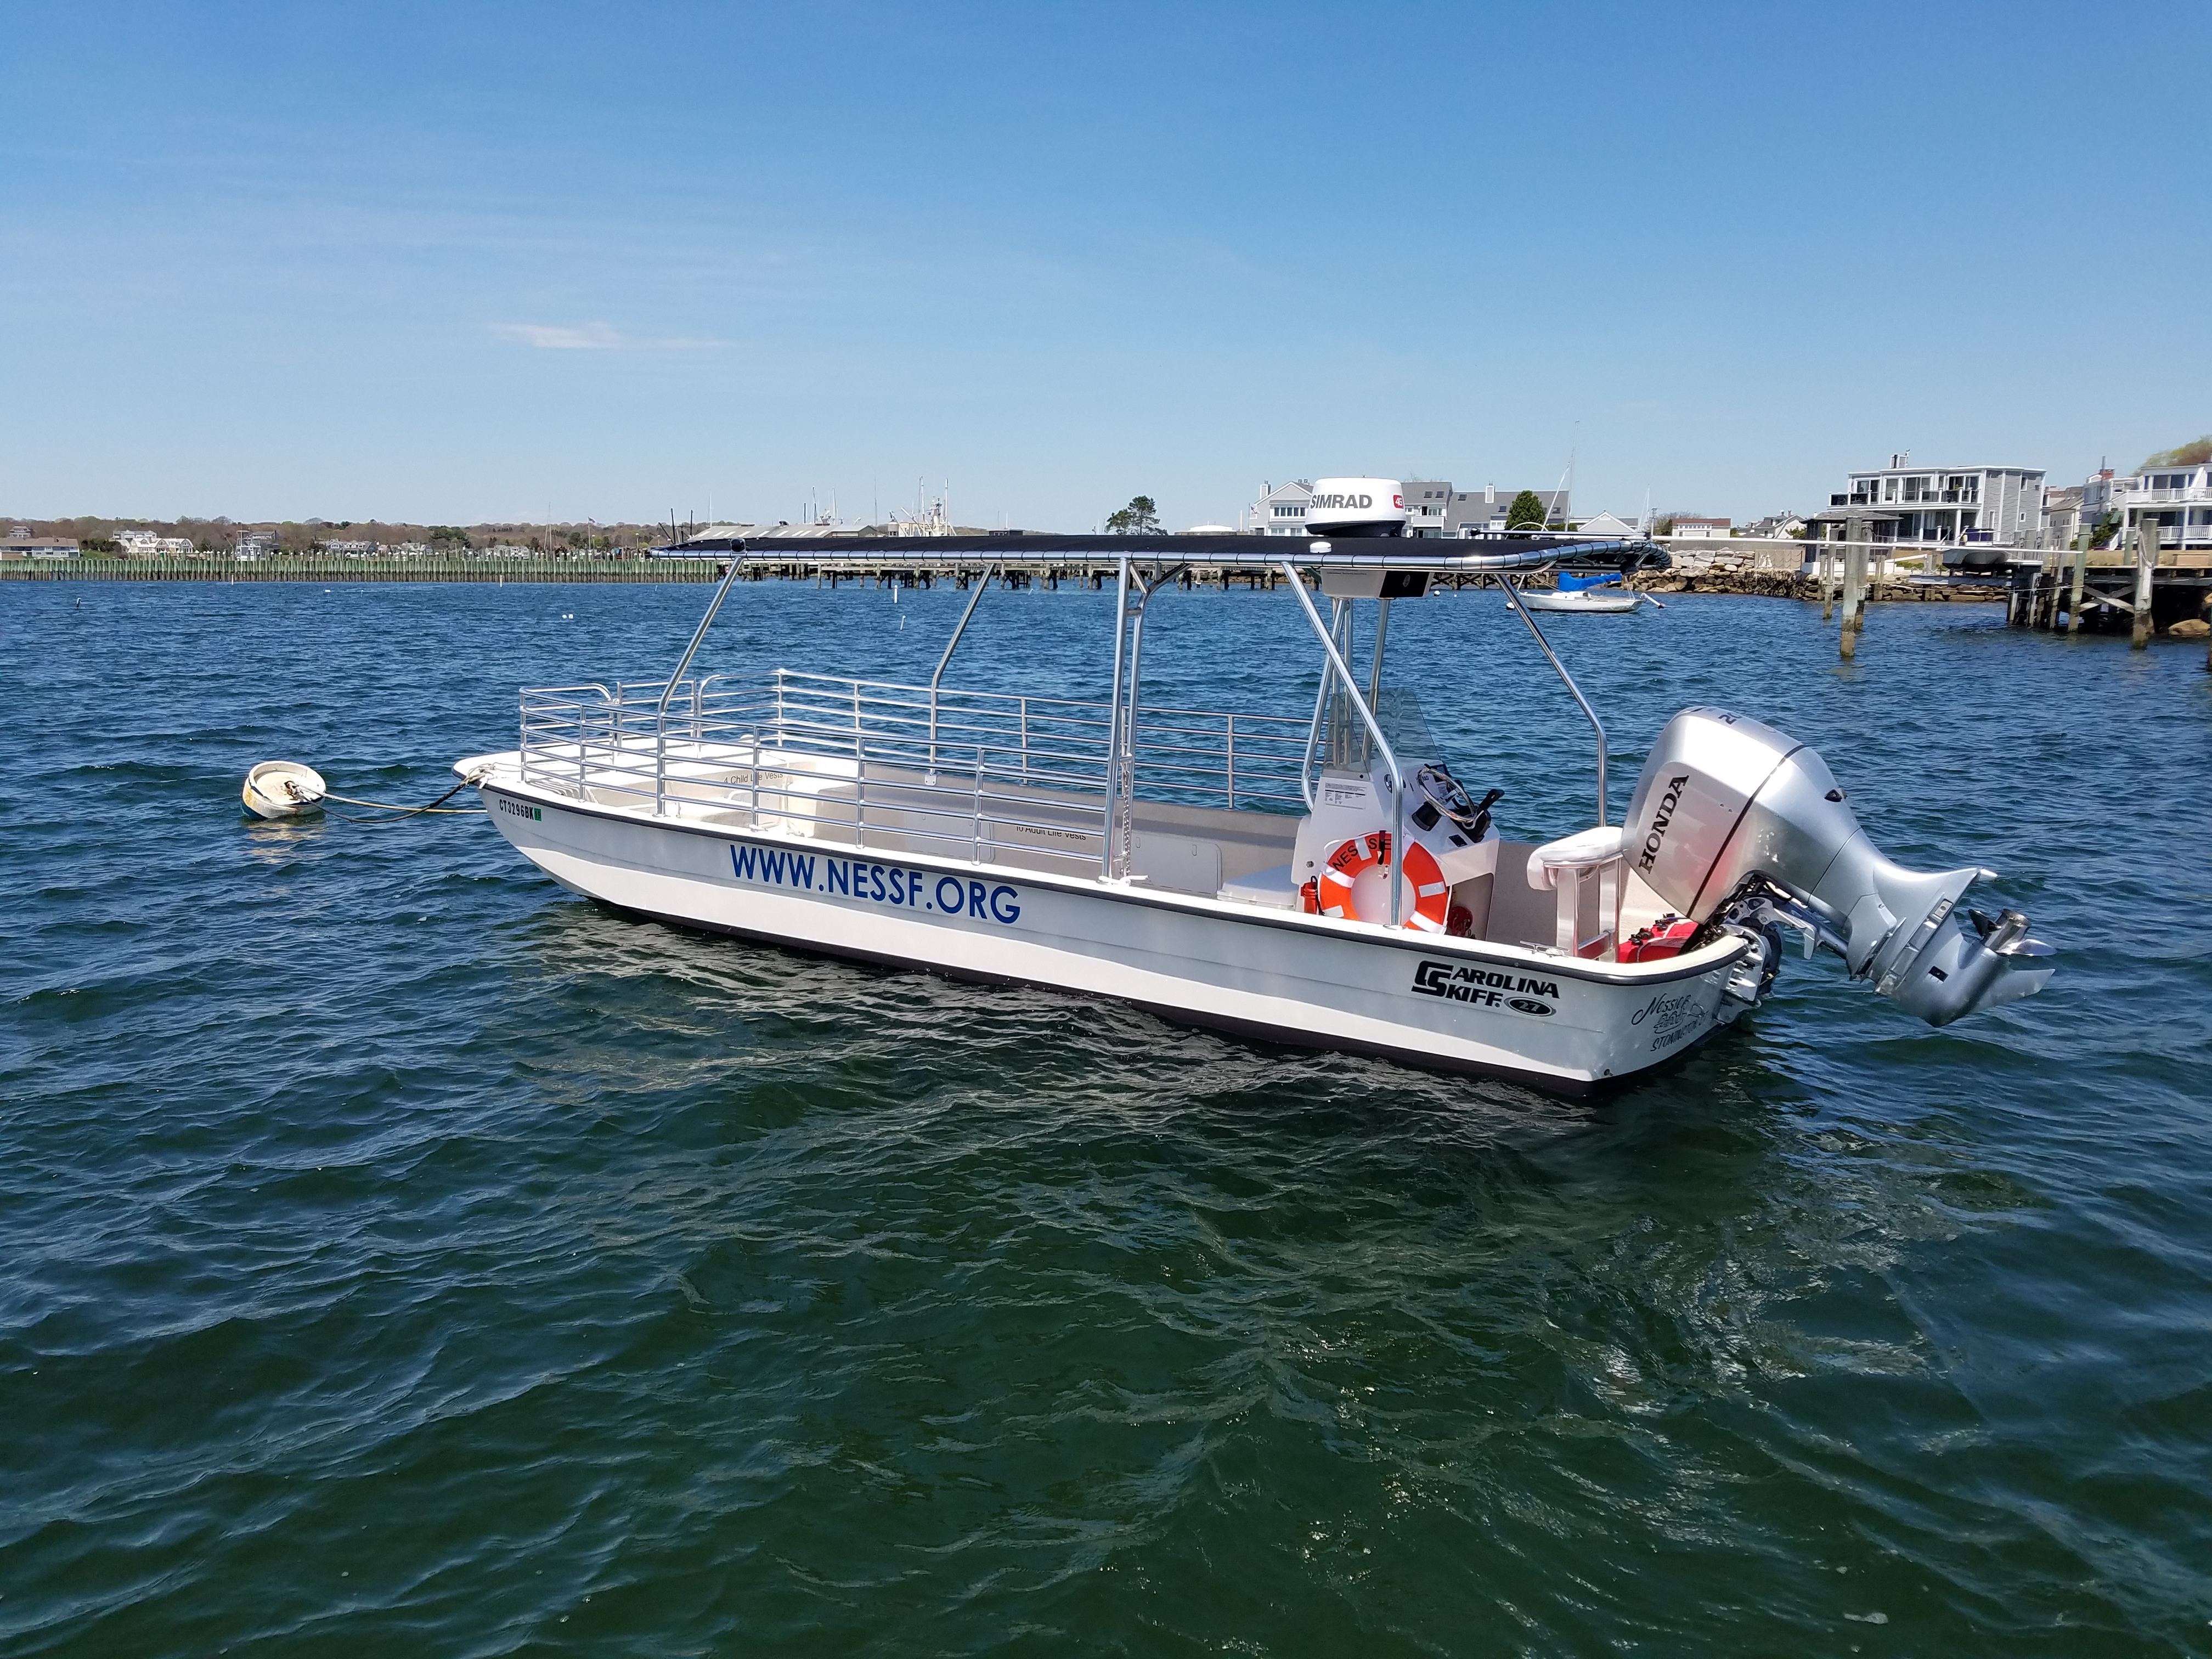 NESS Boat Tours